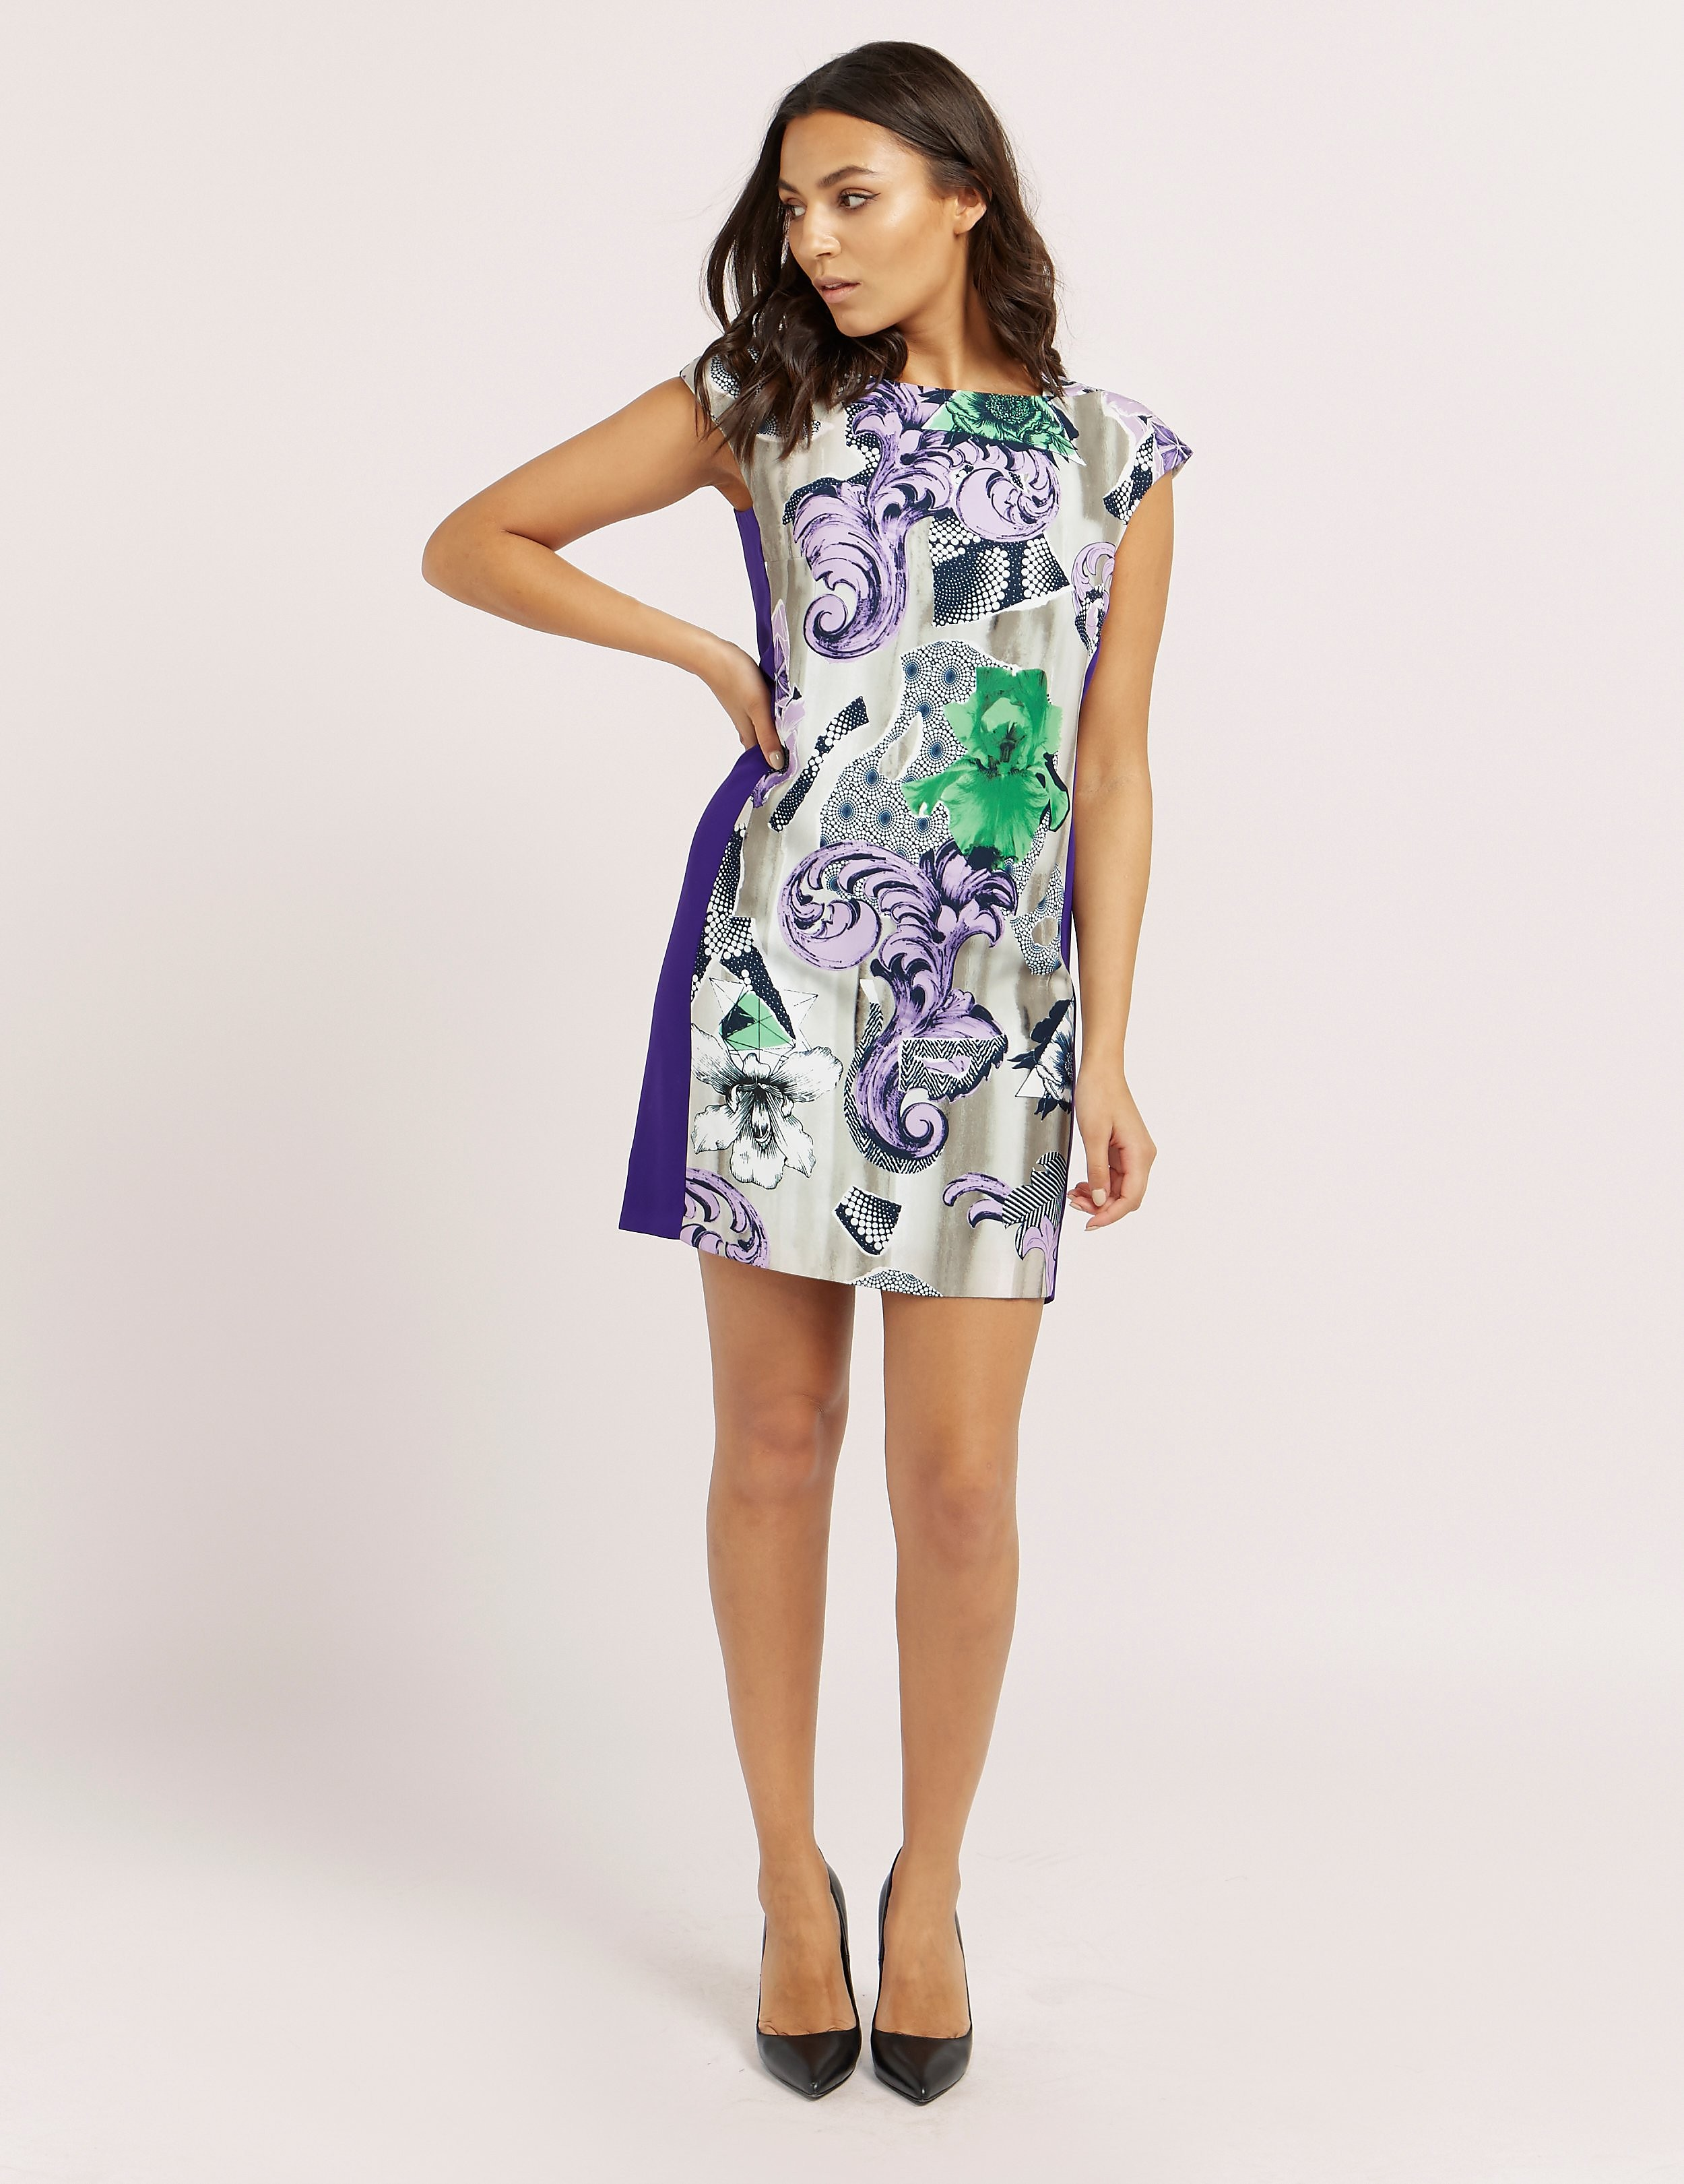 Versace Print Mini Dress